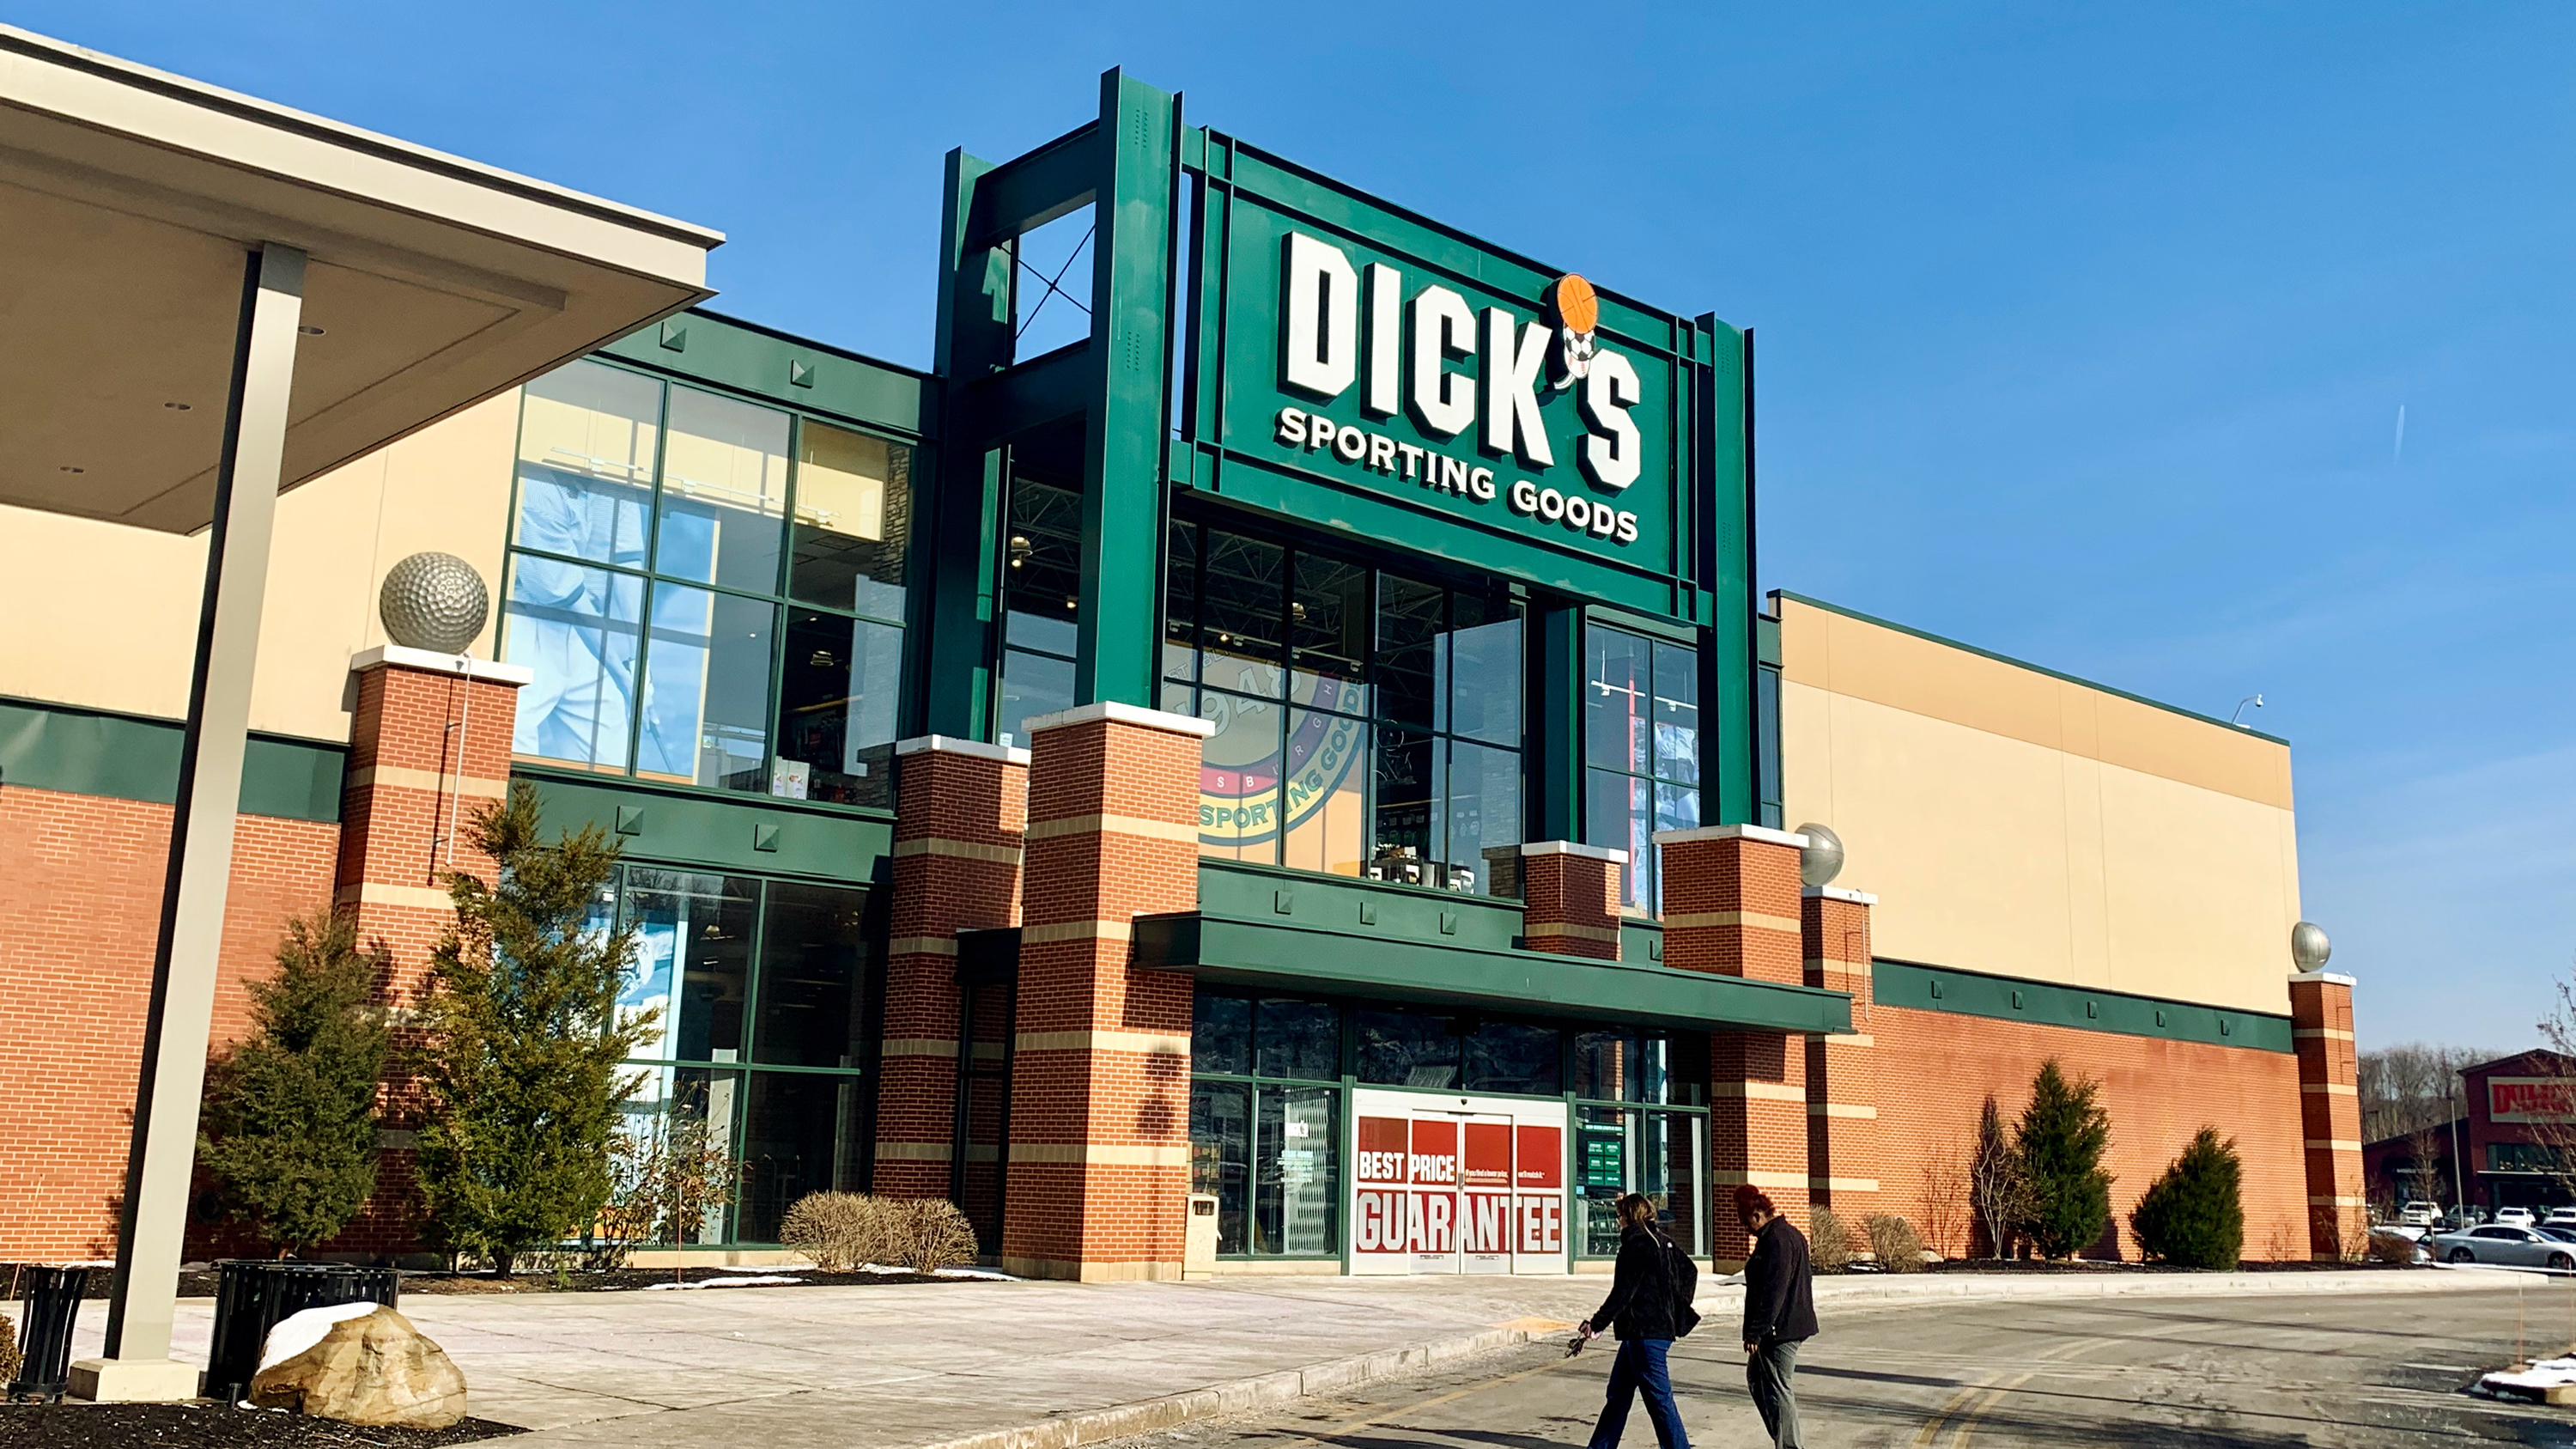 Image for Soul-Searching After Parkland, Dick's CEO Embraces Tougher Stance On Guns Article